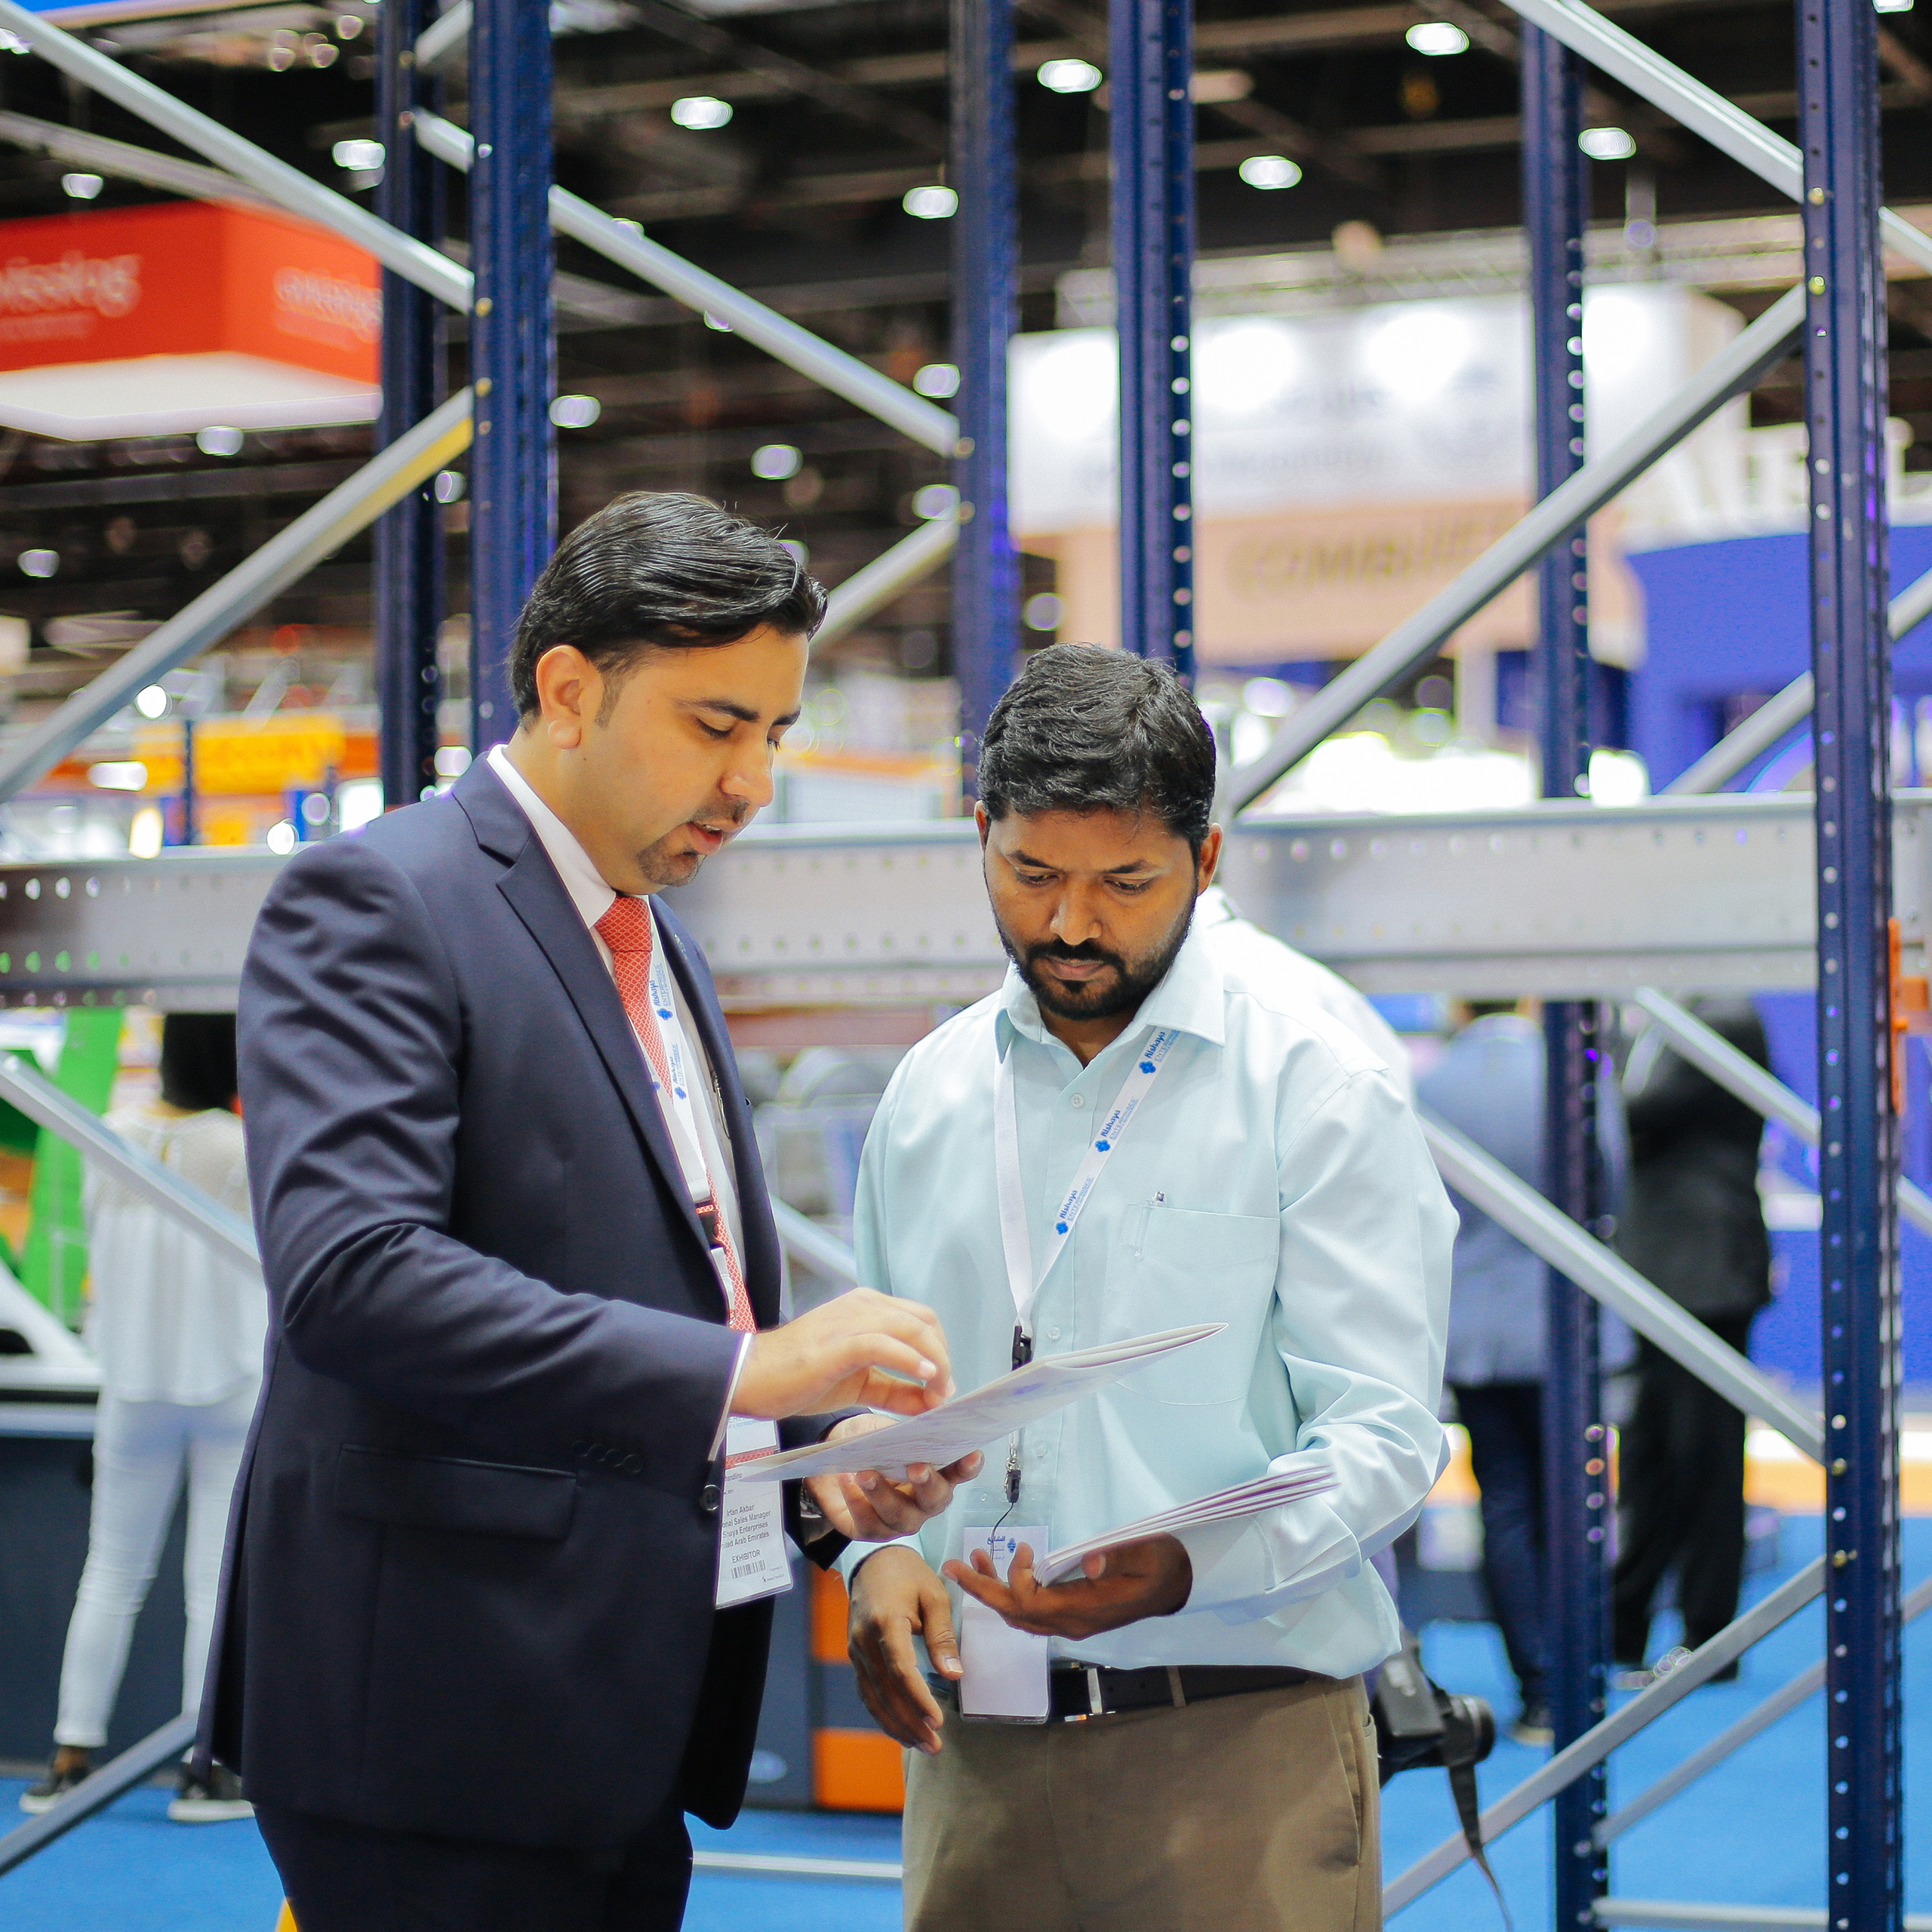 Materials Handling Middle East - Robotics & Automation to transform Middle East's warehousing & inventory control